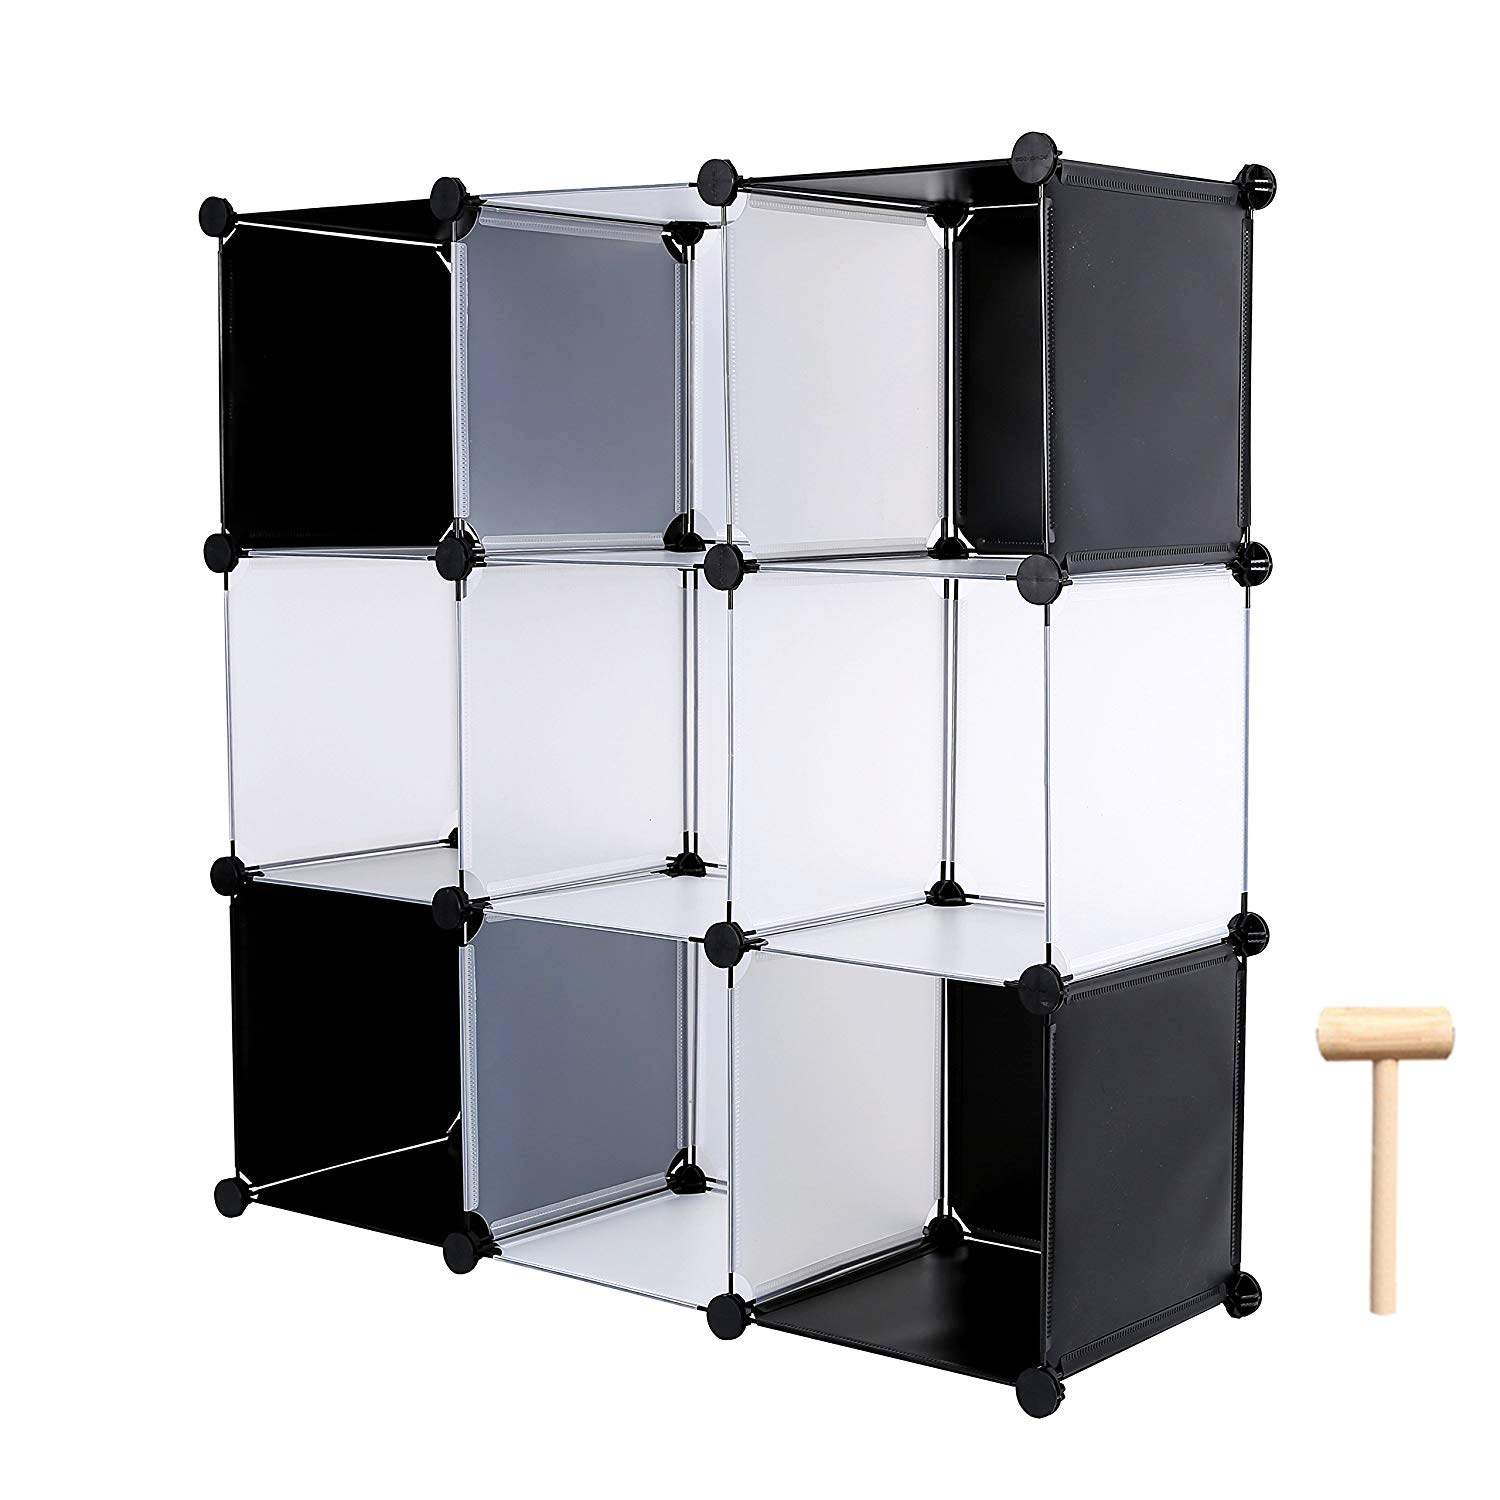 C&AHOME Cube Storage Organizer,9 Cubes Bookcase Organizer, DIY Plastic Closet Cabinet, for Books, Toys, Shoes, Arts, White Cross